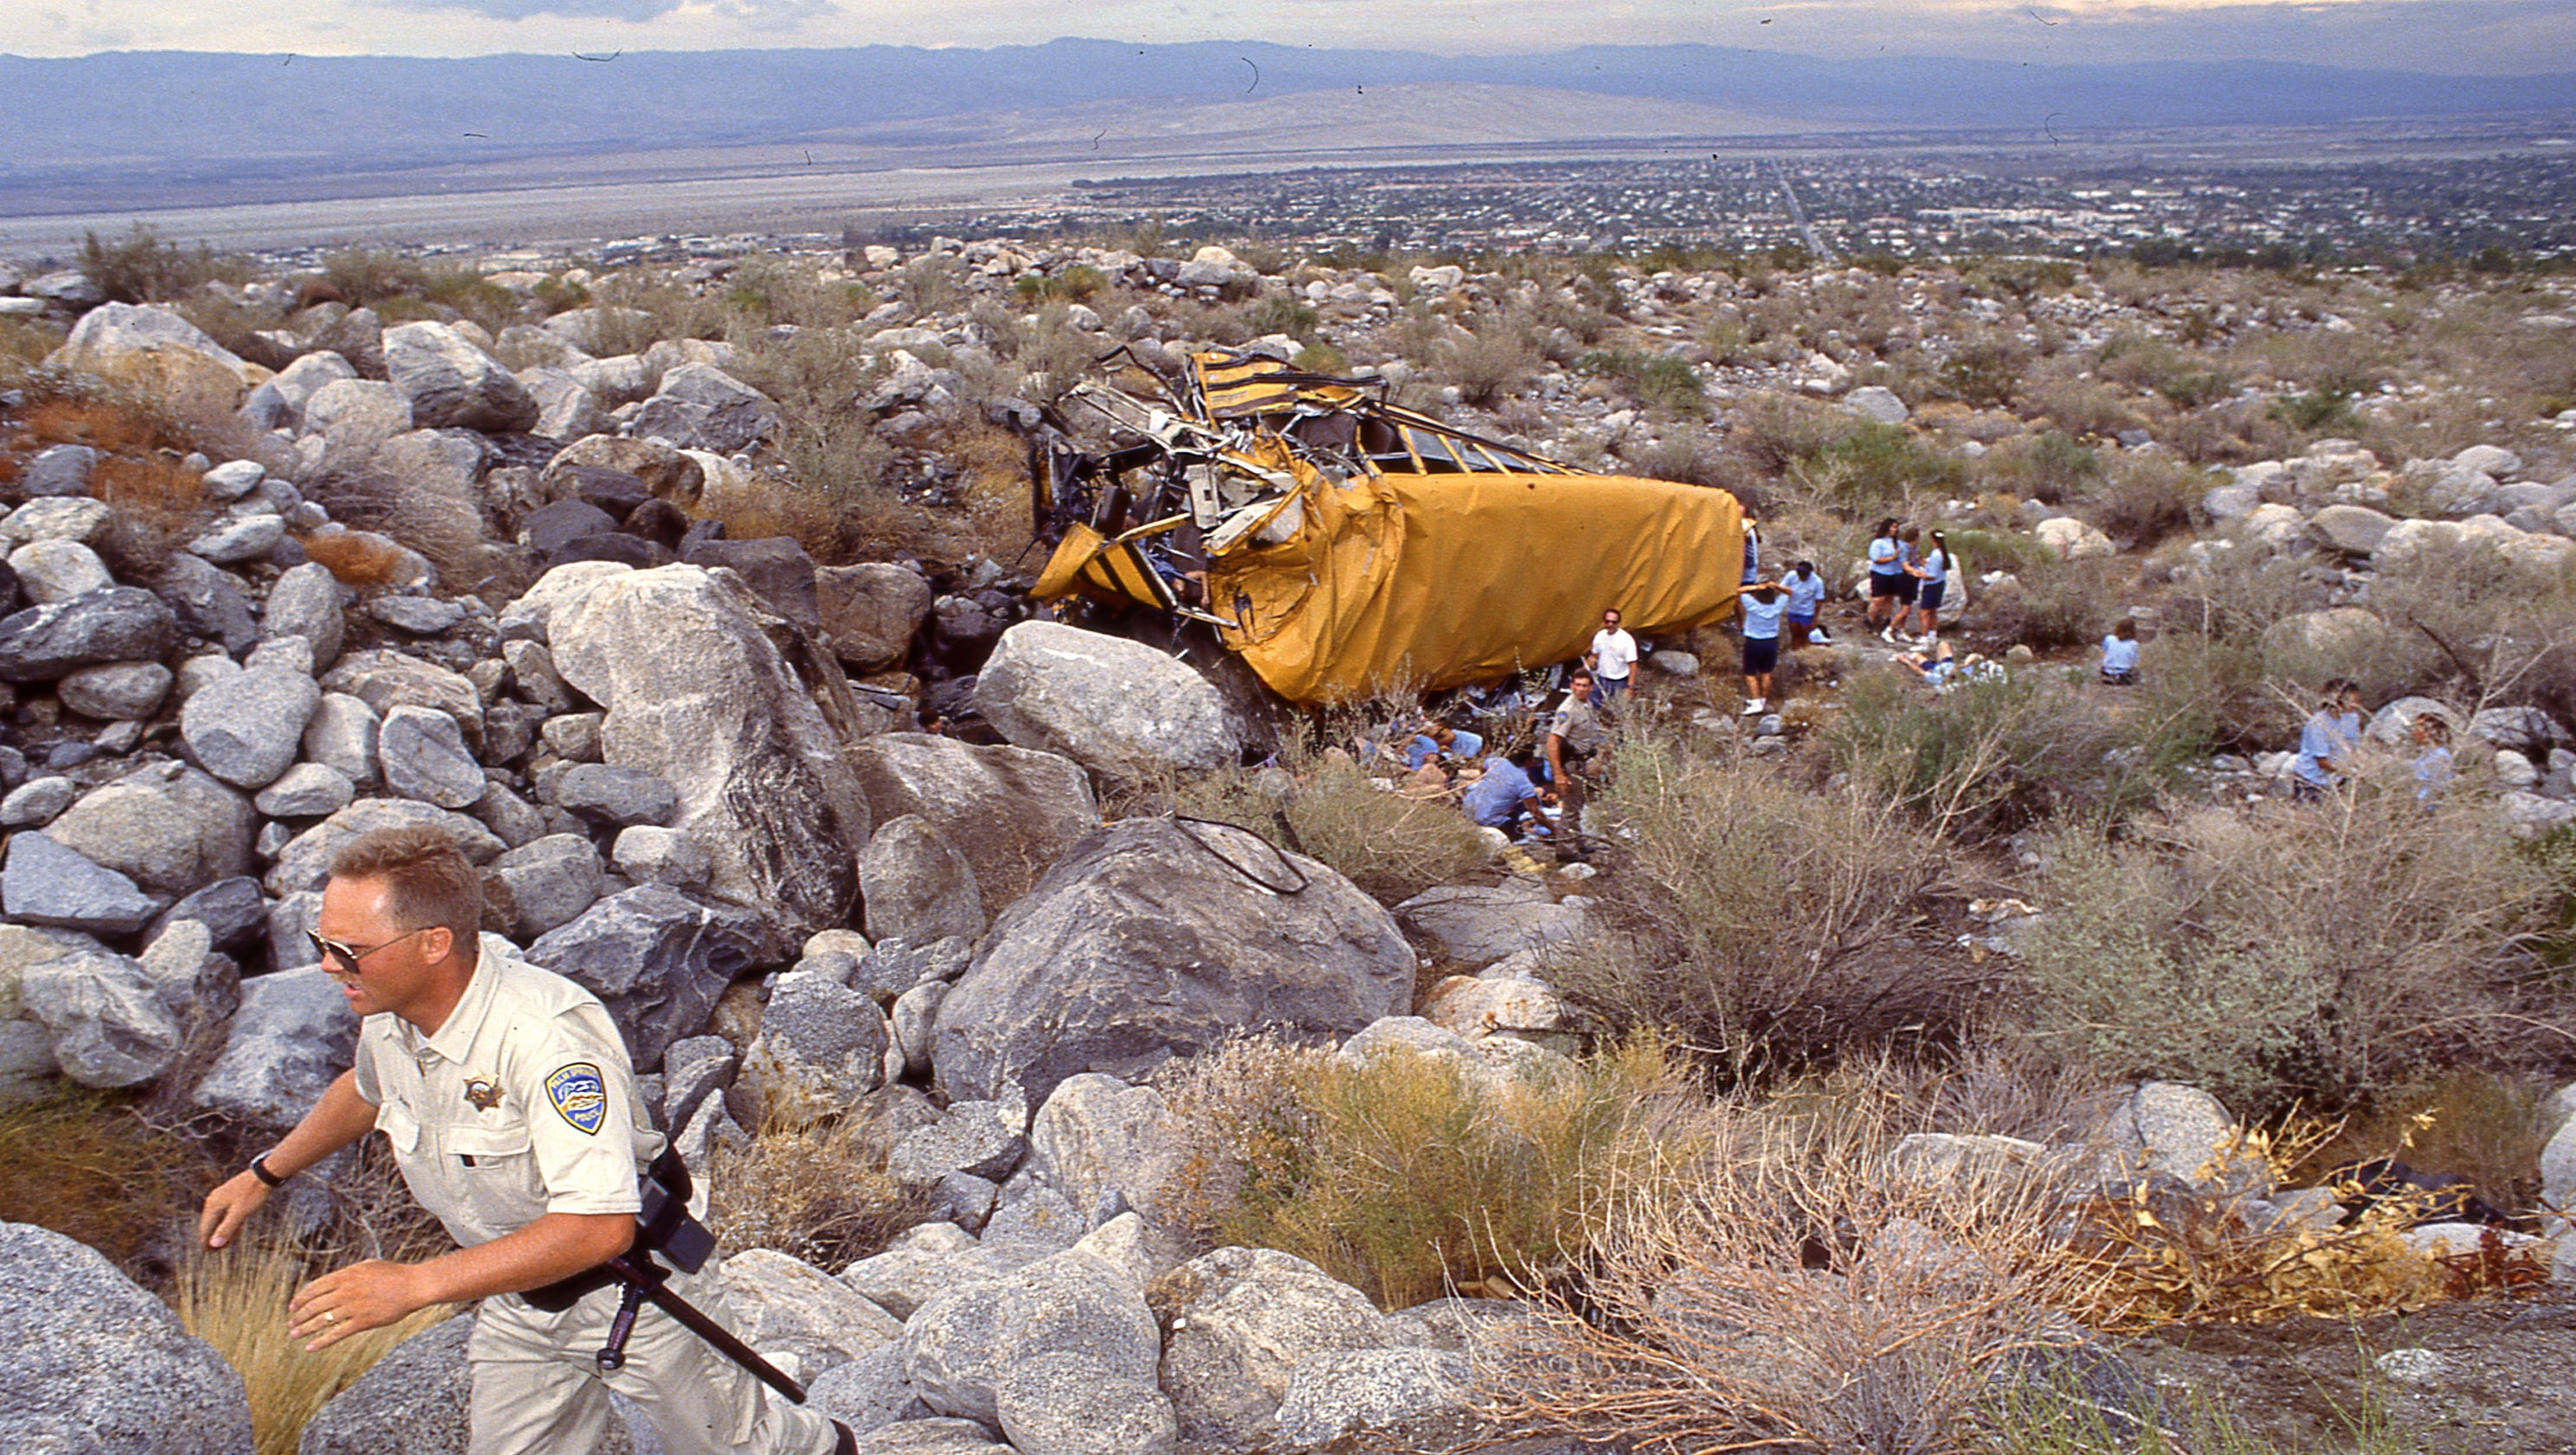 tragic 1991 palm springs girl scouts bus crash still